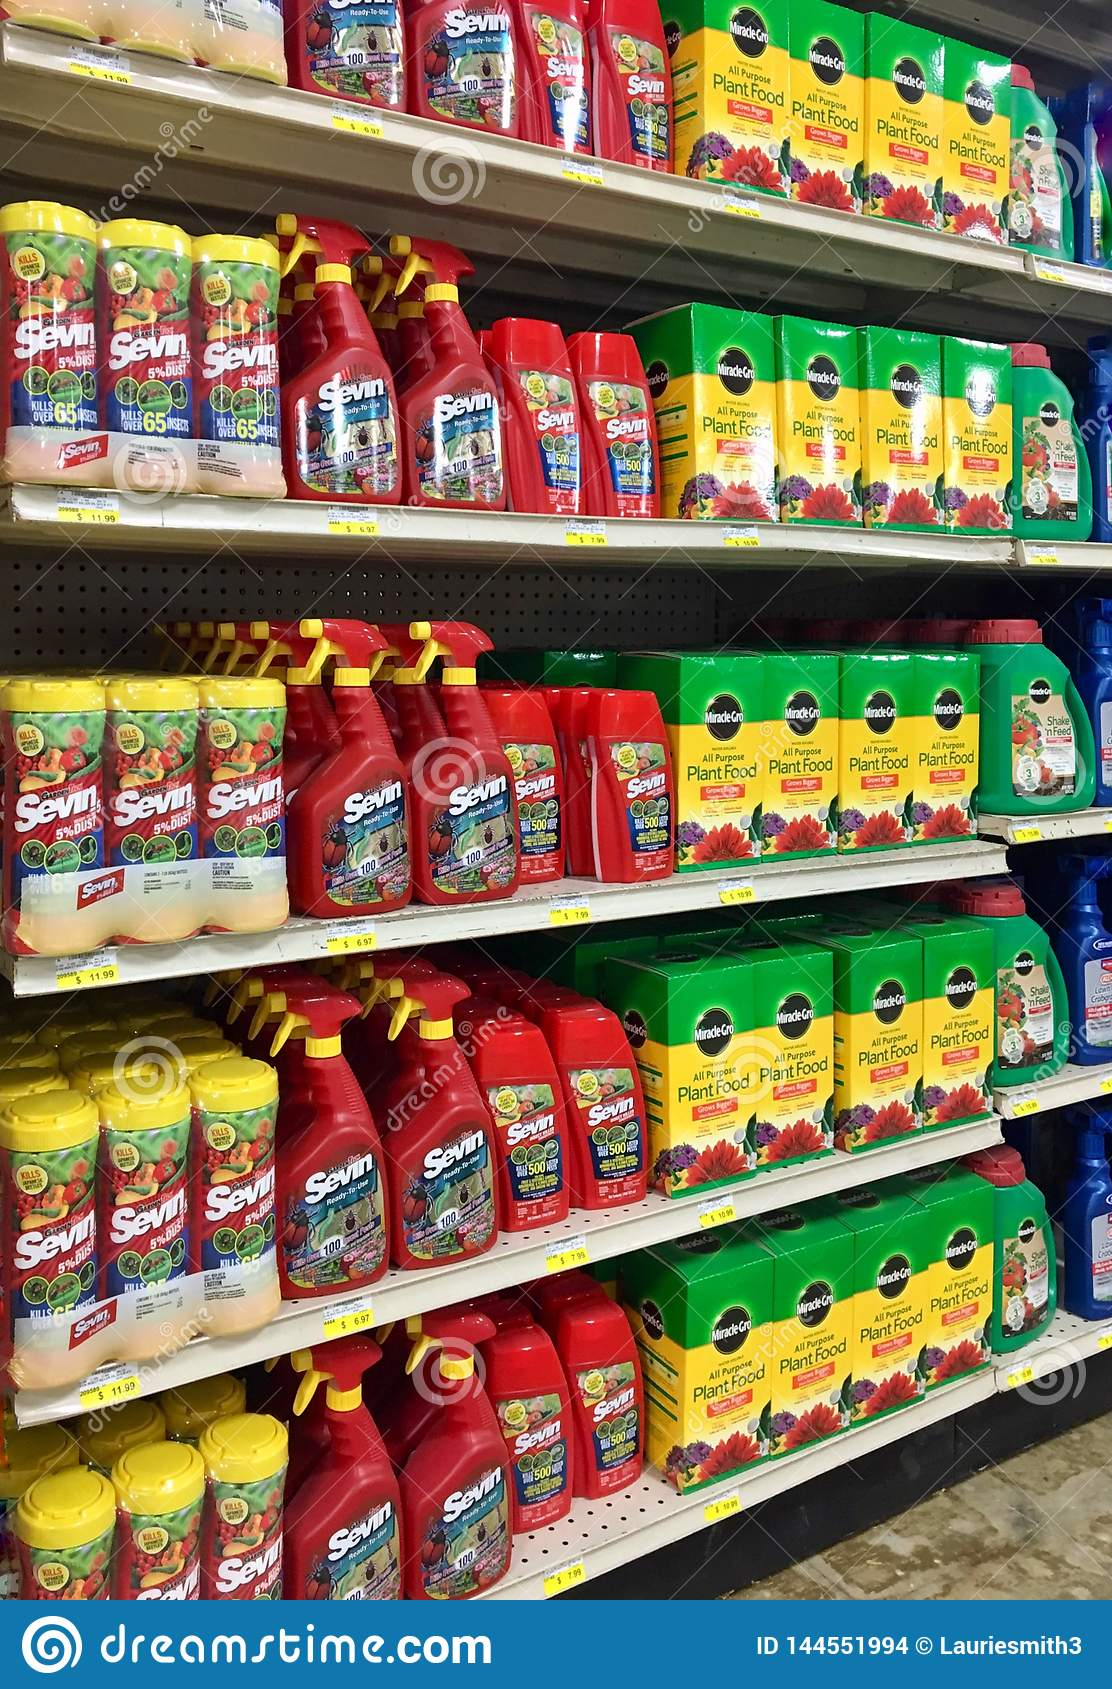 EDITORIAL: A variety of weed killers and plant food products for sale at a farm and garden store in Illinois